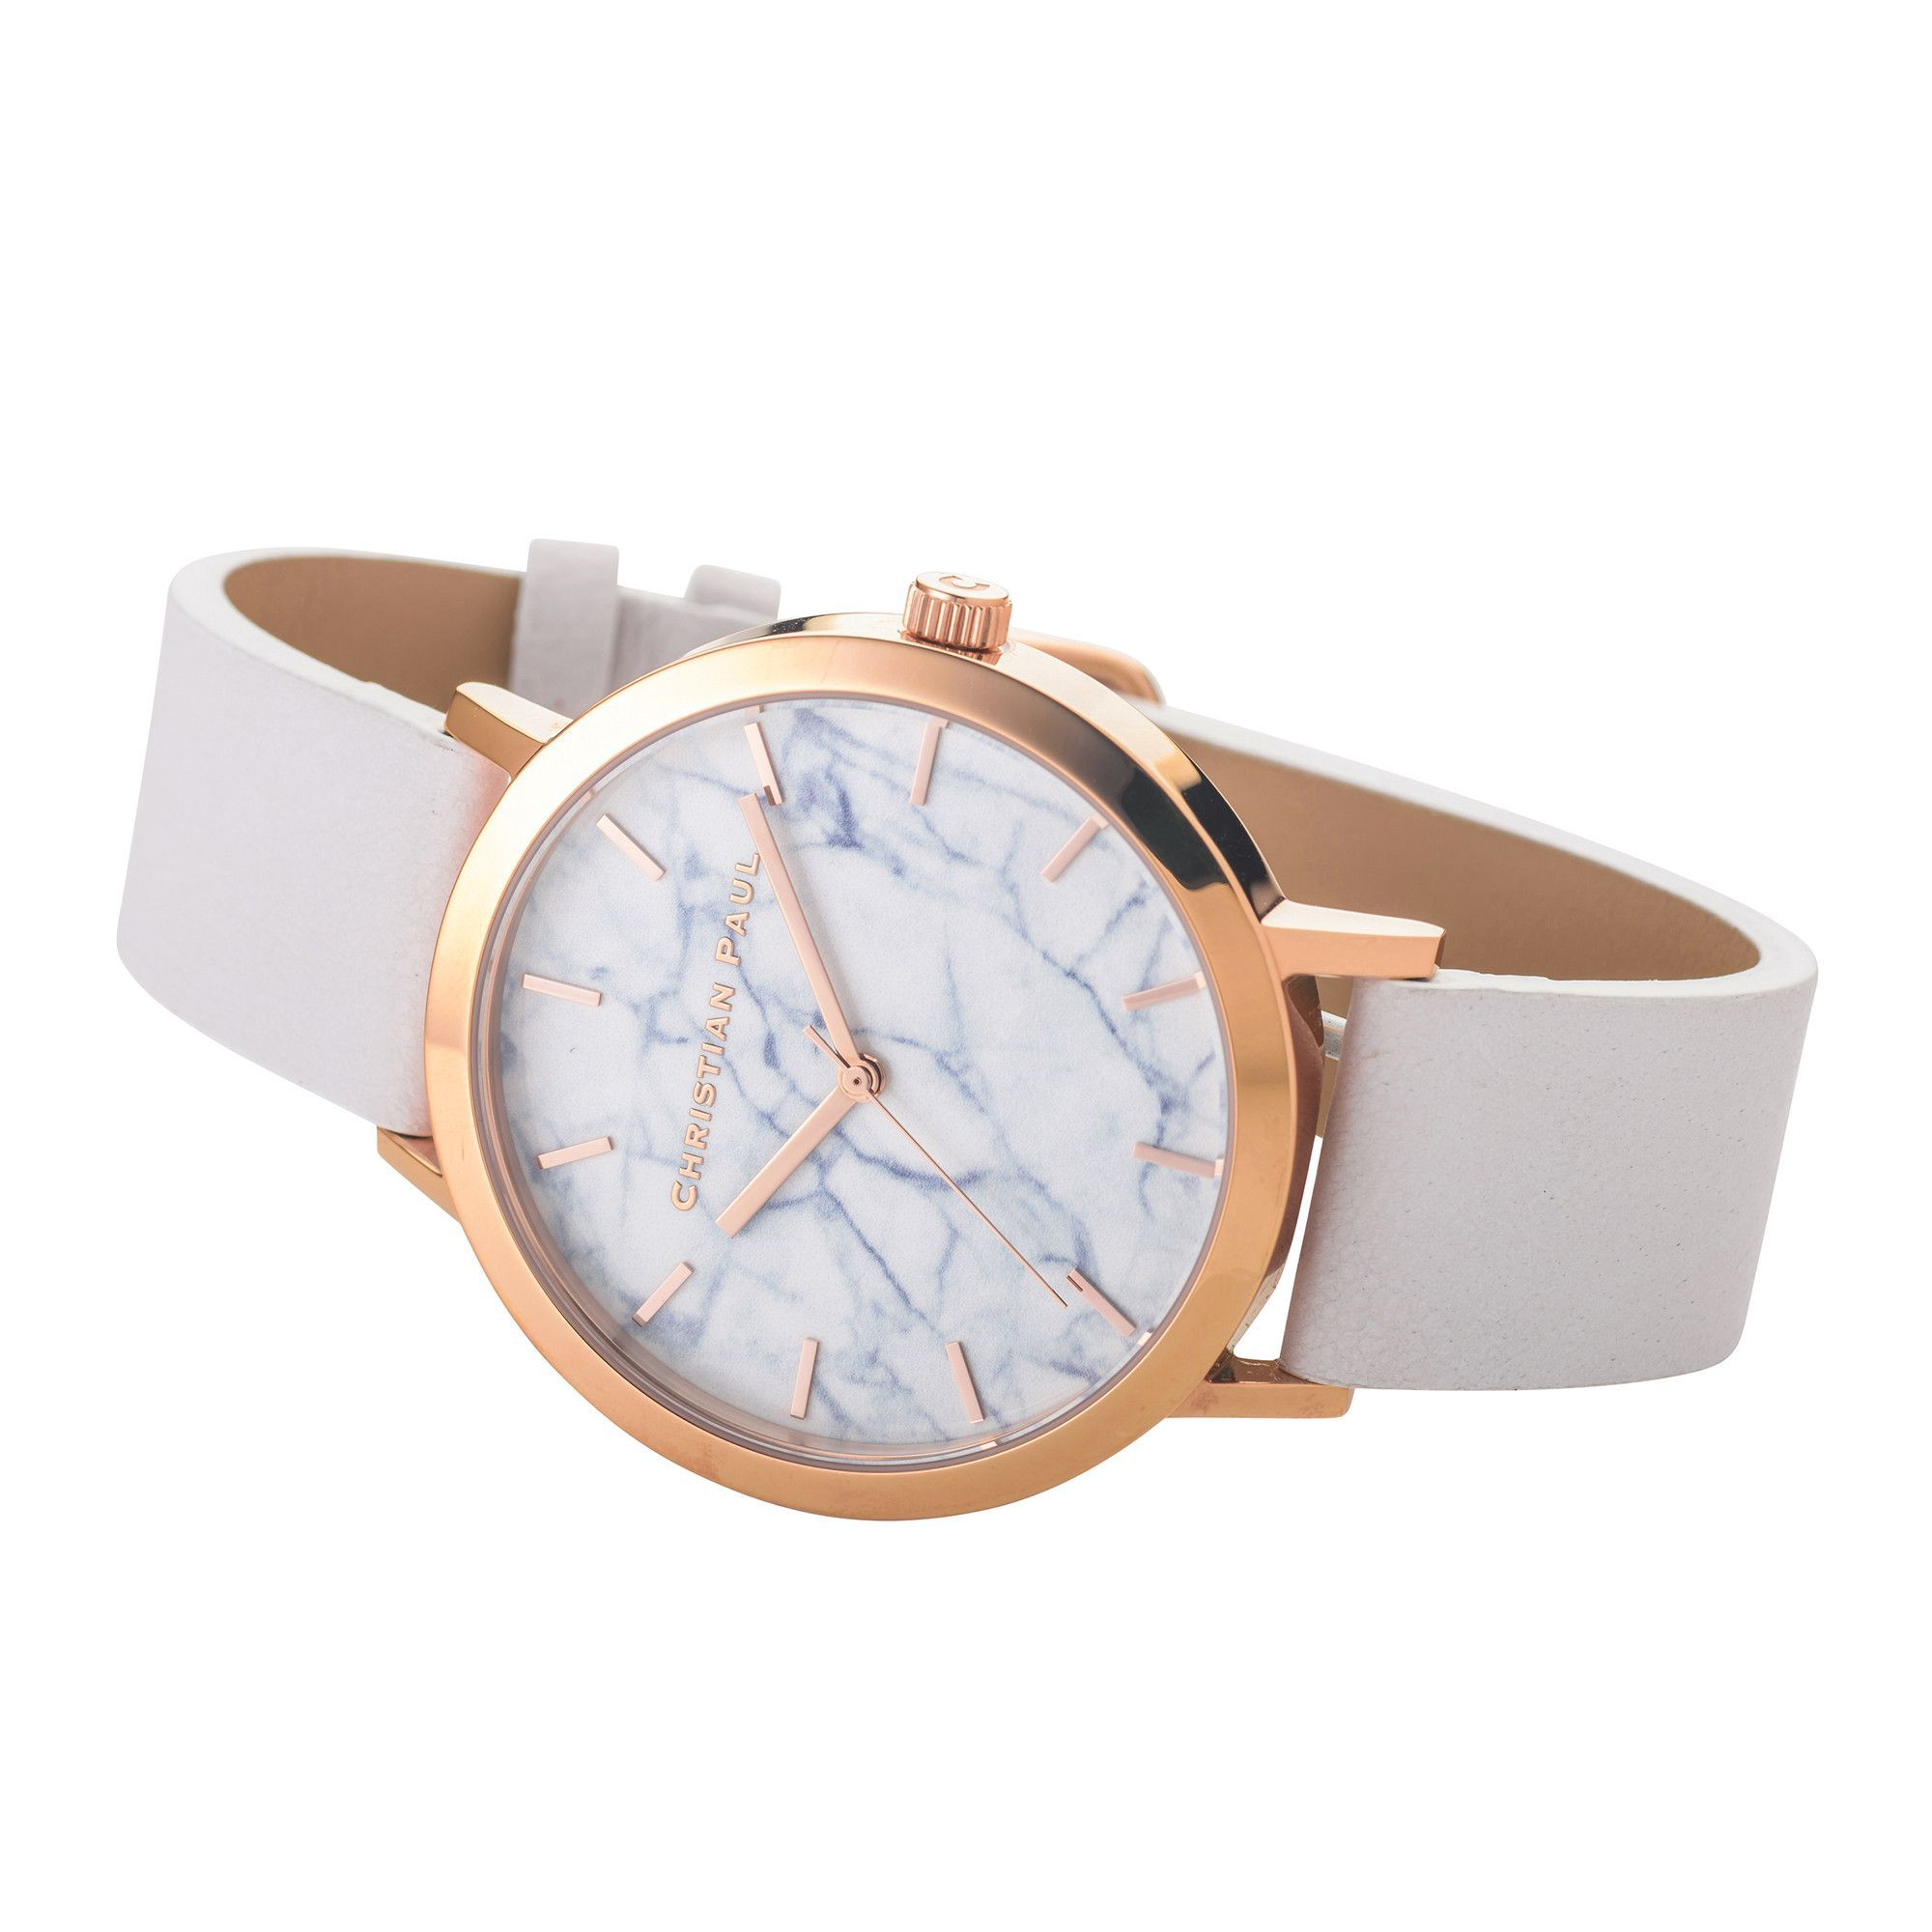 us womens renwick nato band nylon strap iowa white shop collections gelfand s pink doris watch women peach co watches from rose elegant by gold